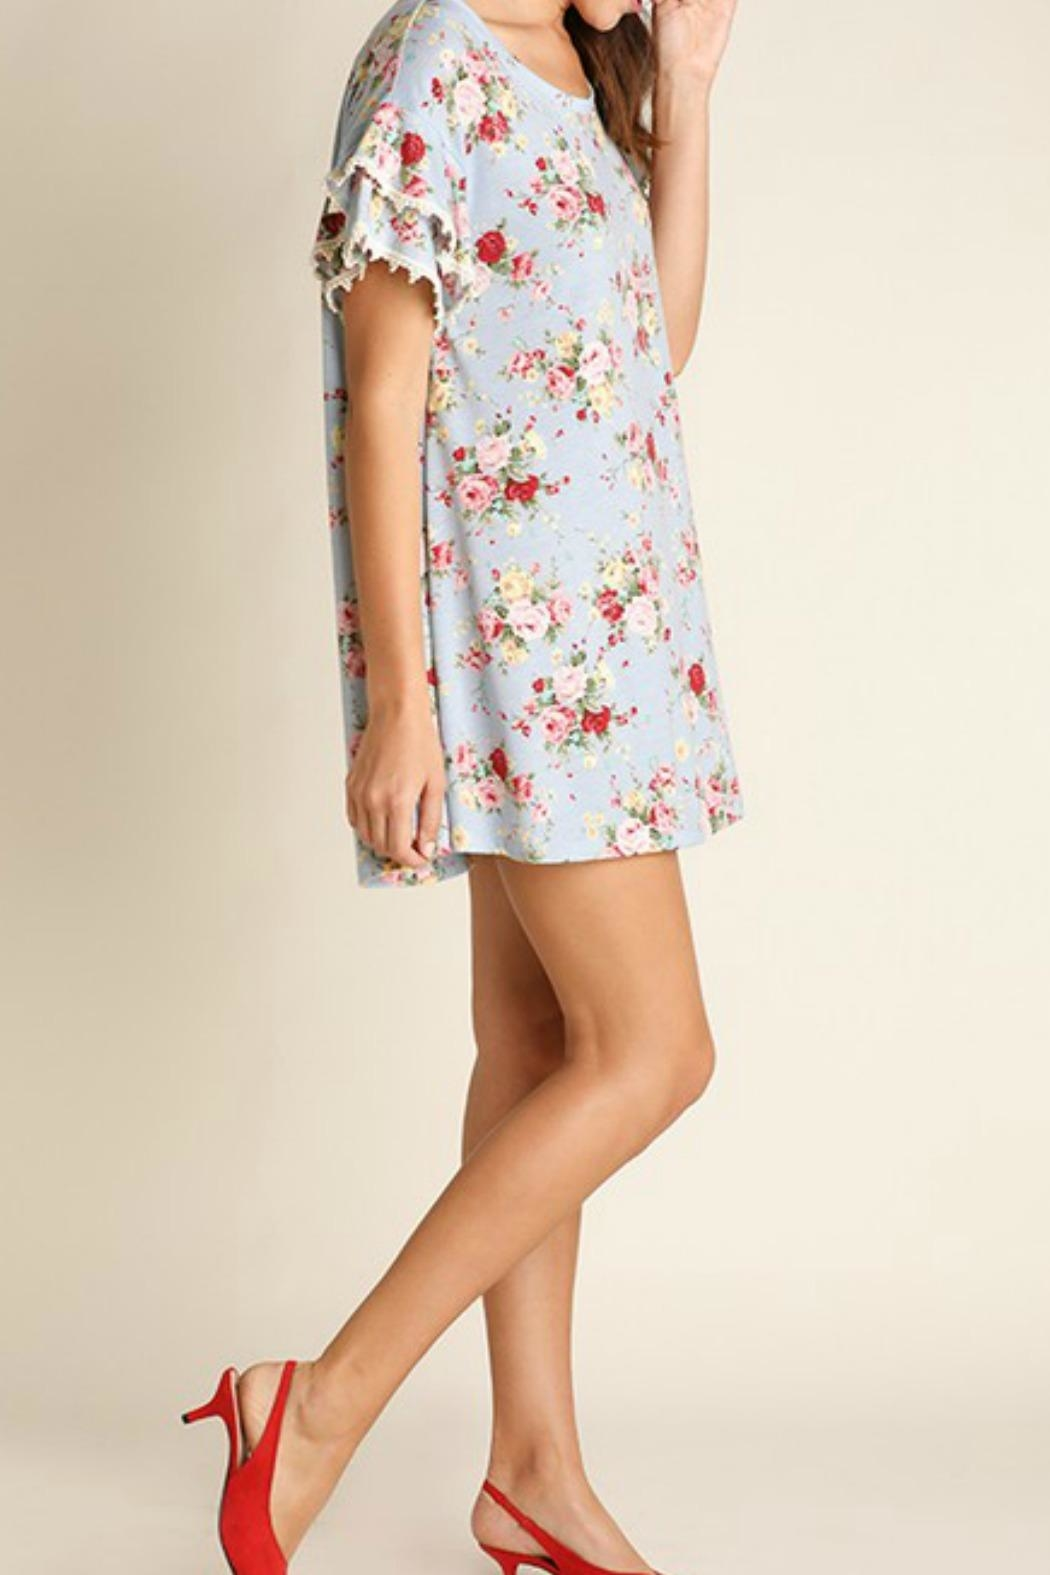 Umgee USA Cotton Floral Dress - Front Full Image